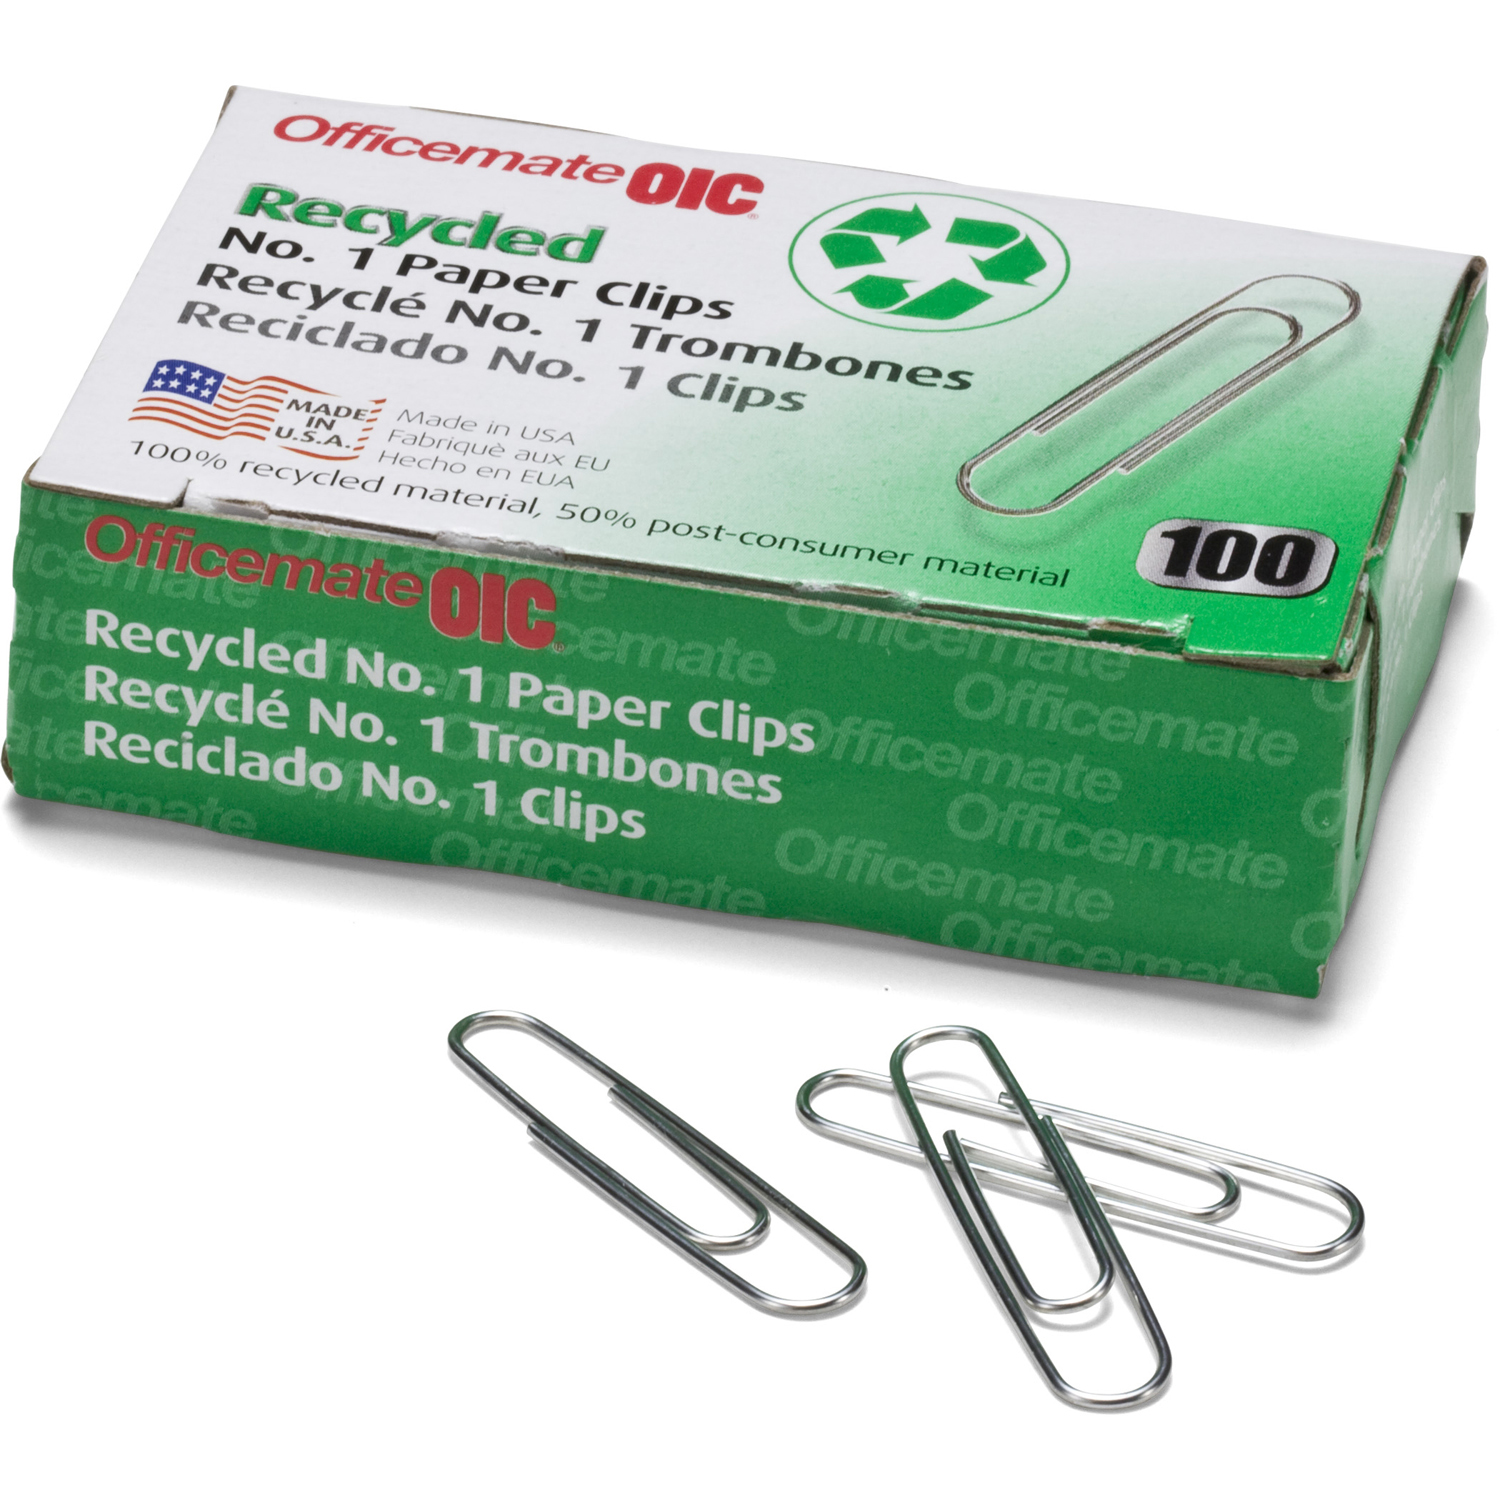 (2 Pack) Officemate Recycled No. 1 Paper Clips, Pack of 10 Boxes of 100 Clips Each (99961)